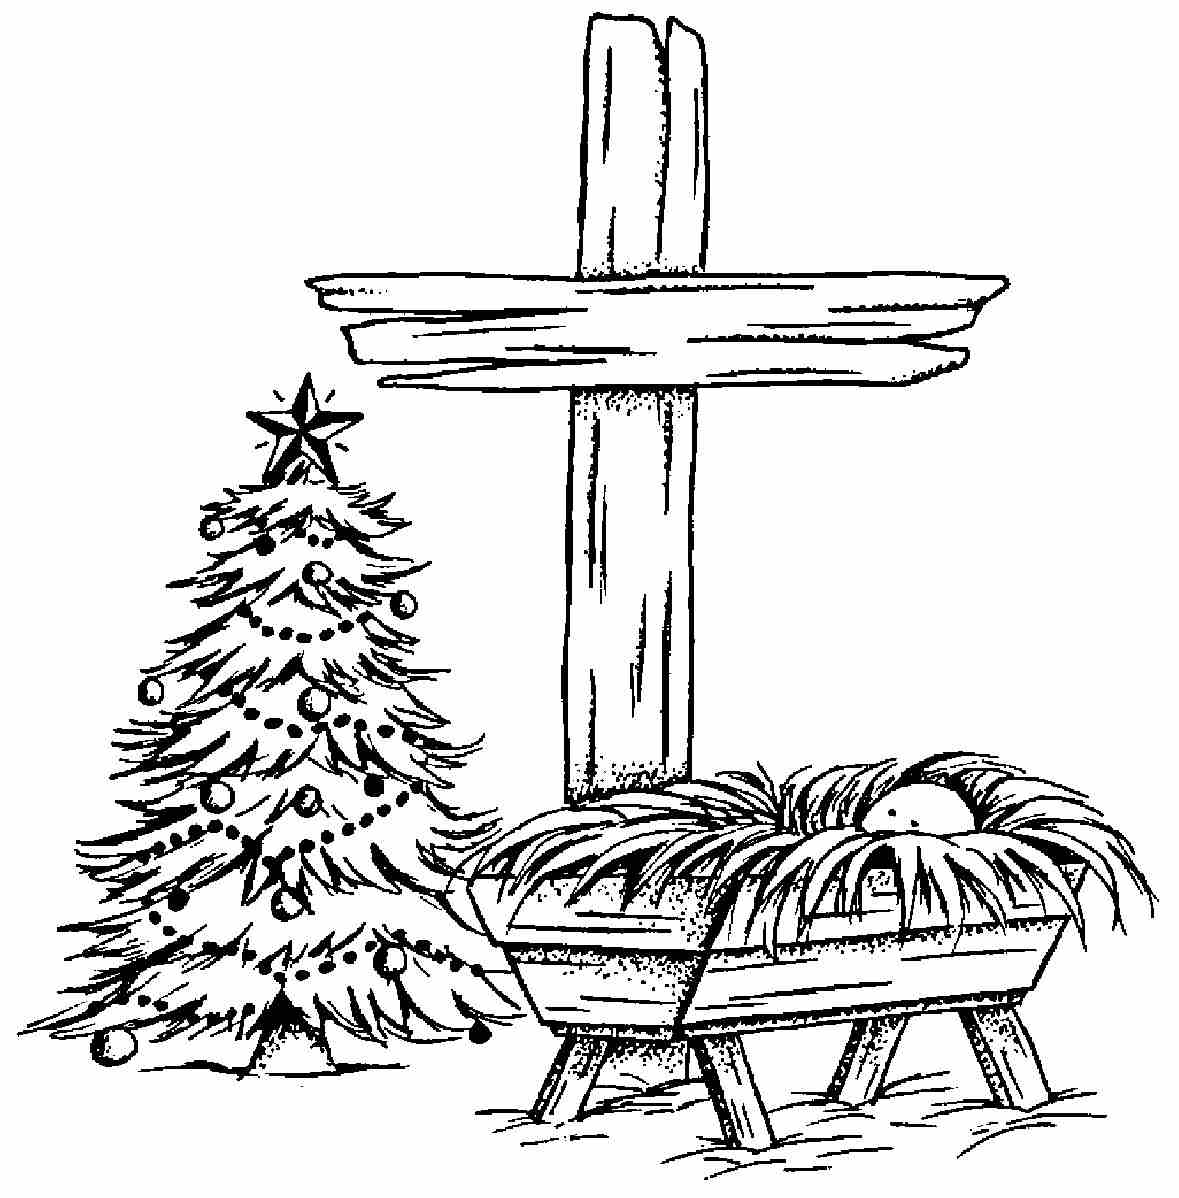 coloring pages baby jesus in manger free images of baby jesus in the manger download free jesus manger in coloring pages baby